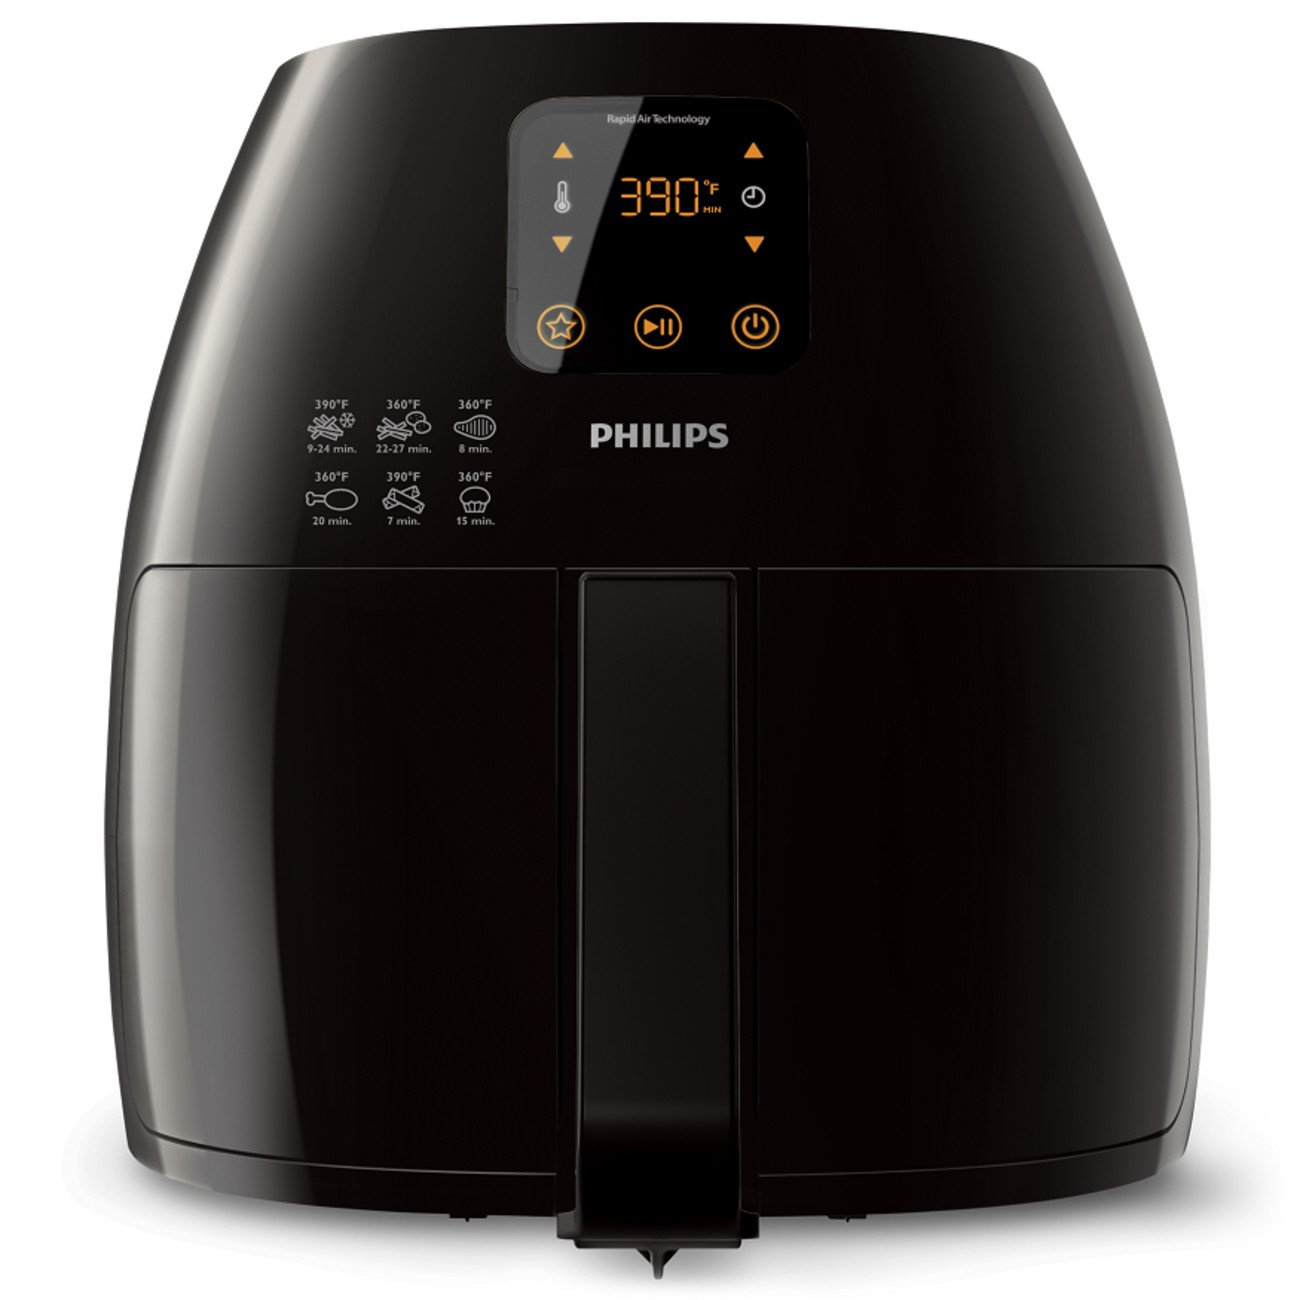 Top 7 BEST AIR FRYERS (2020 Reviews & Buying Guide) 1